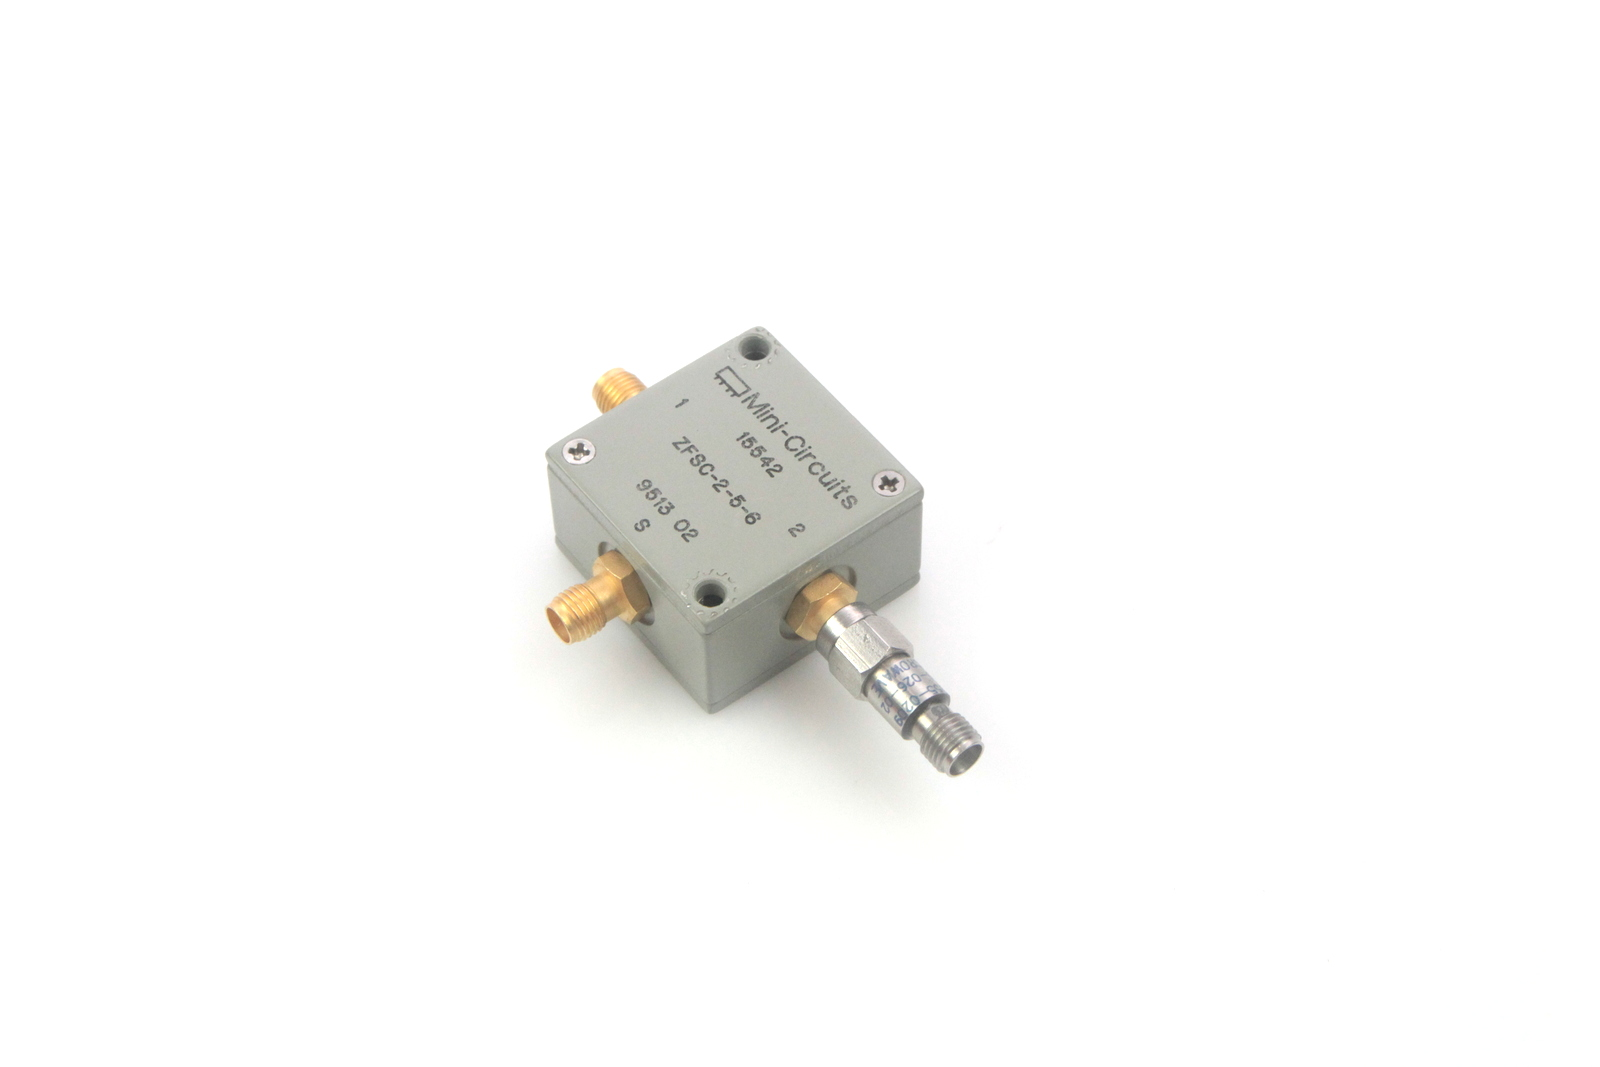 Details about Mini-Circuits ZFSC-2-5-6 10 to 1500 MHz, SMA (F) Splitter  Combiner w/0955-0209